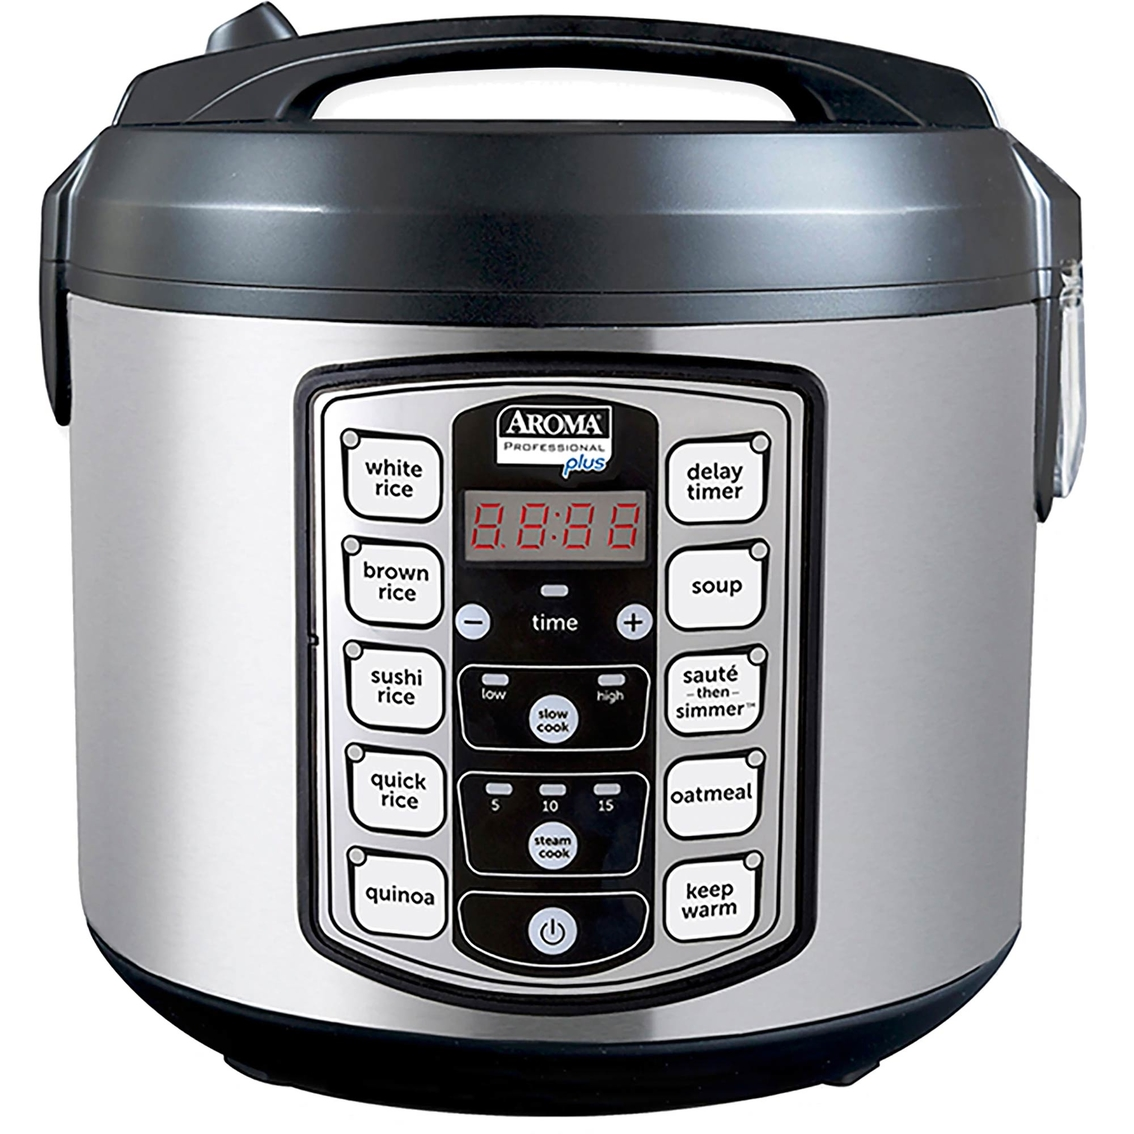 Aroma Professional 20 Cup Digital Rice Cooker, Steamer